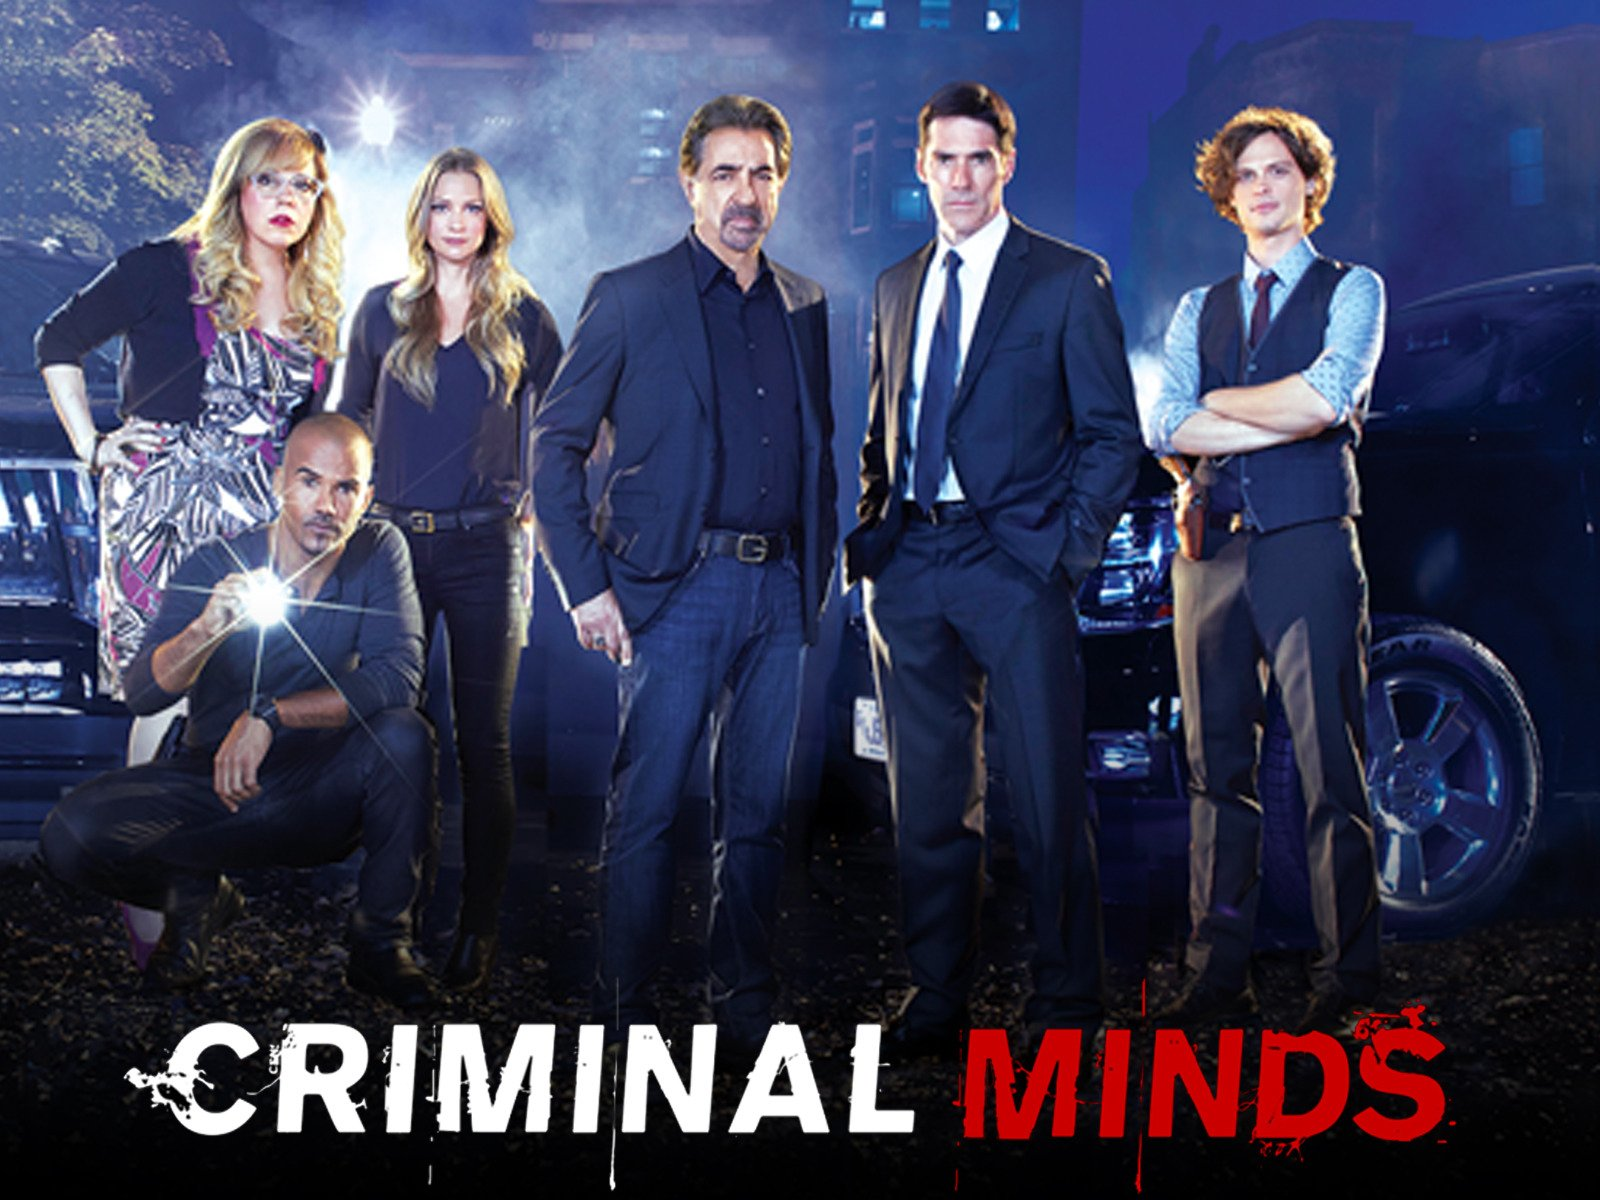 criminal minds season 4 free torrent download